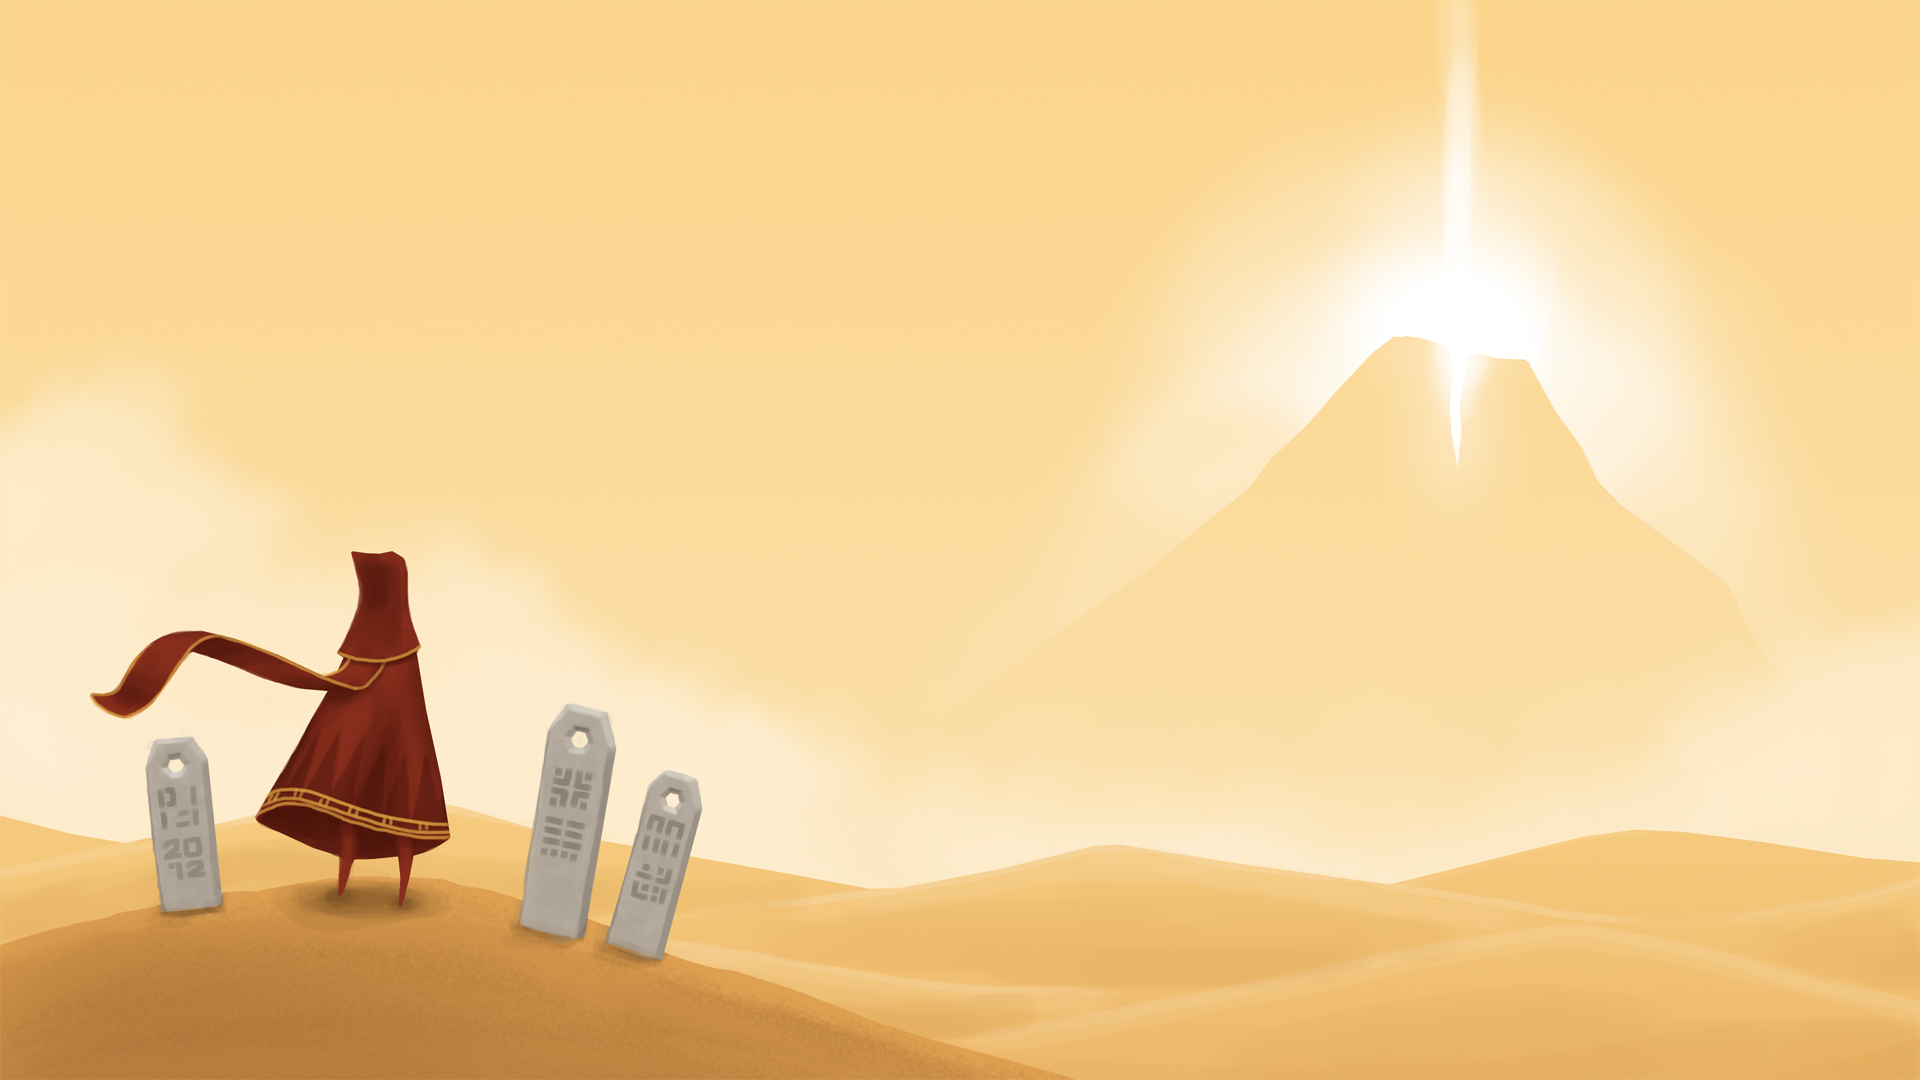 Journey Game